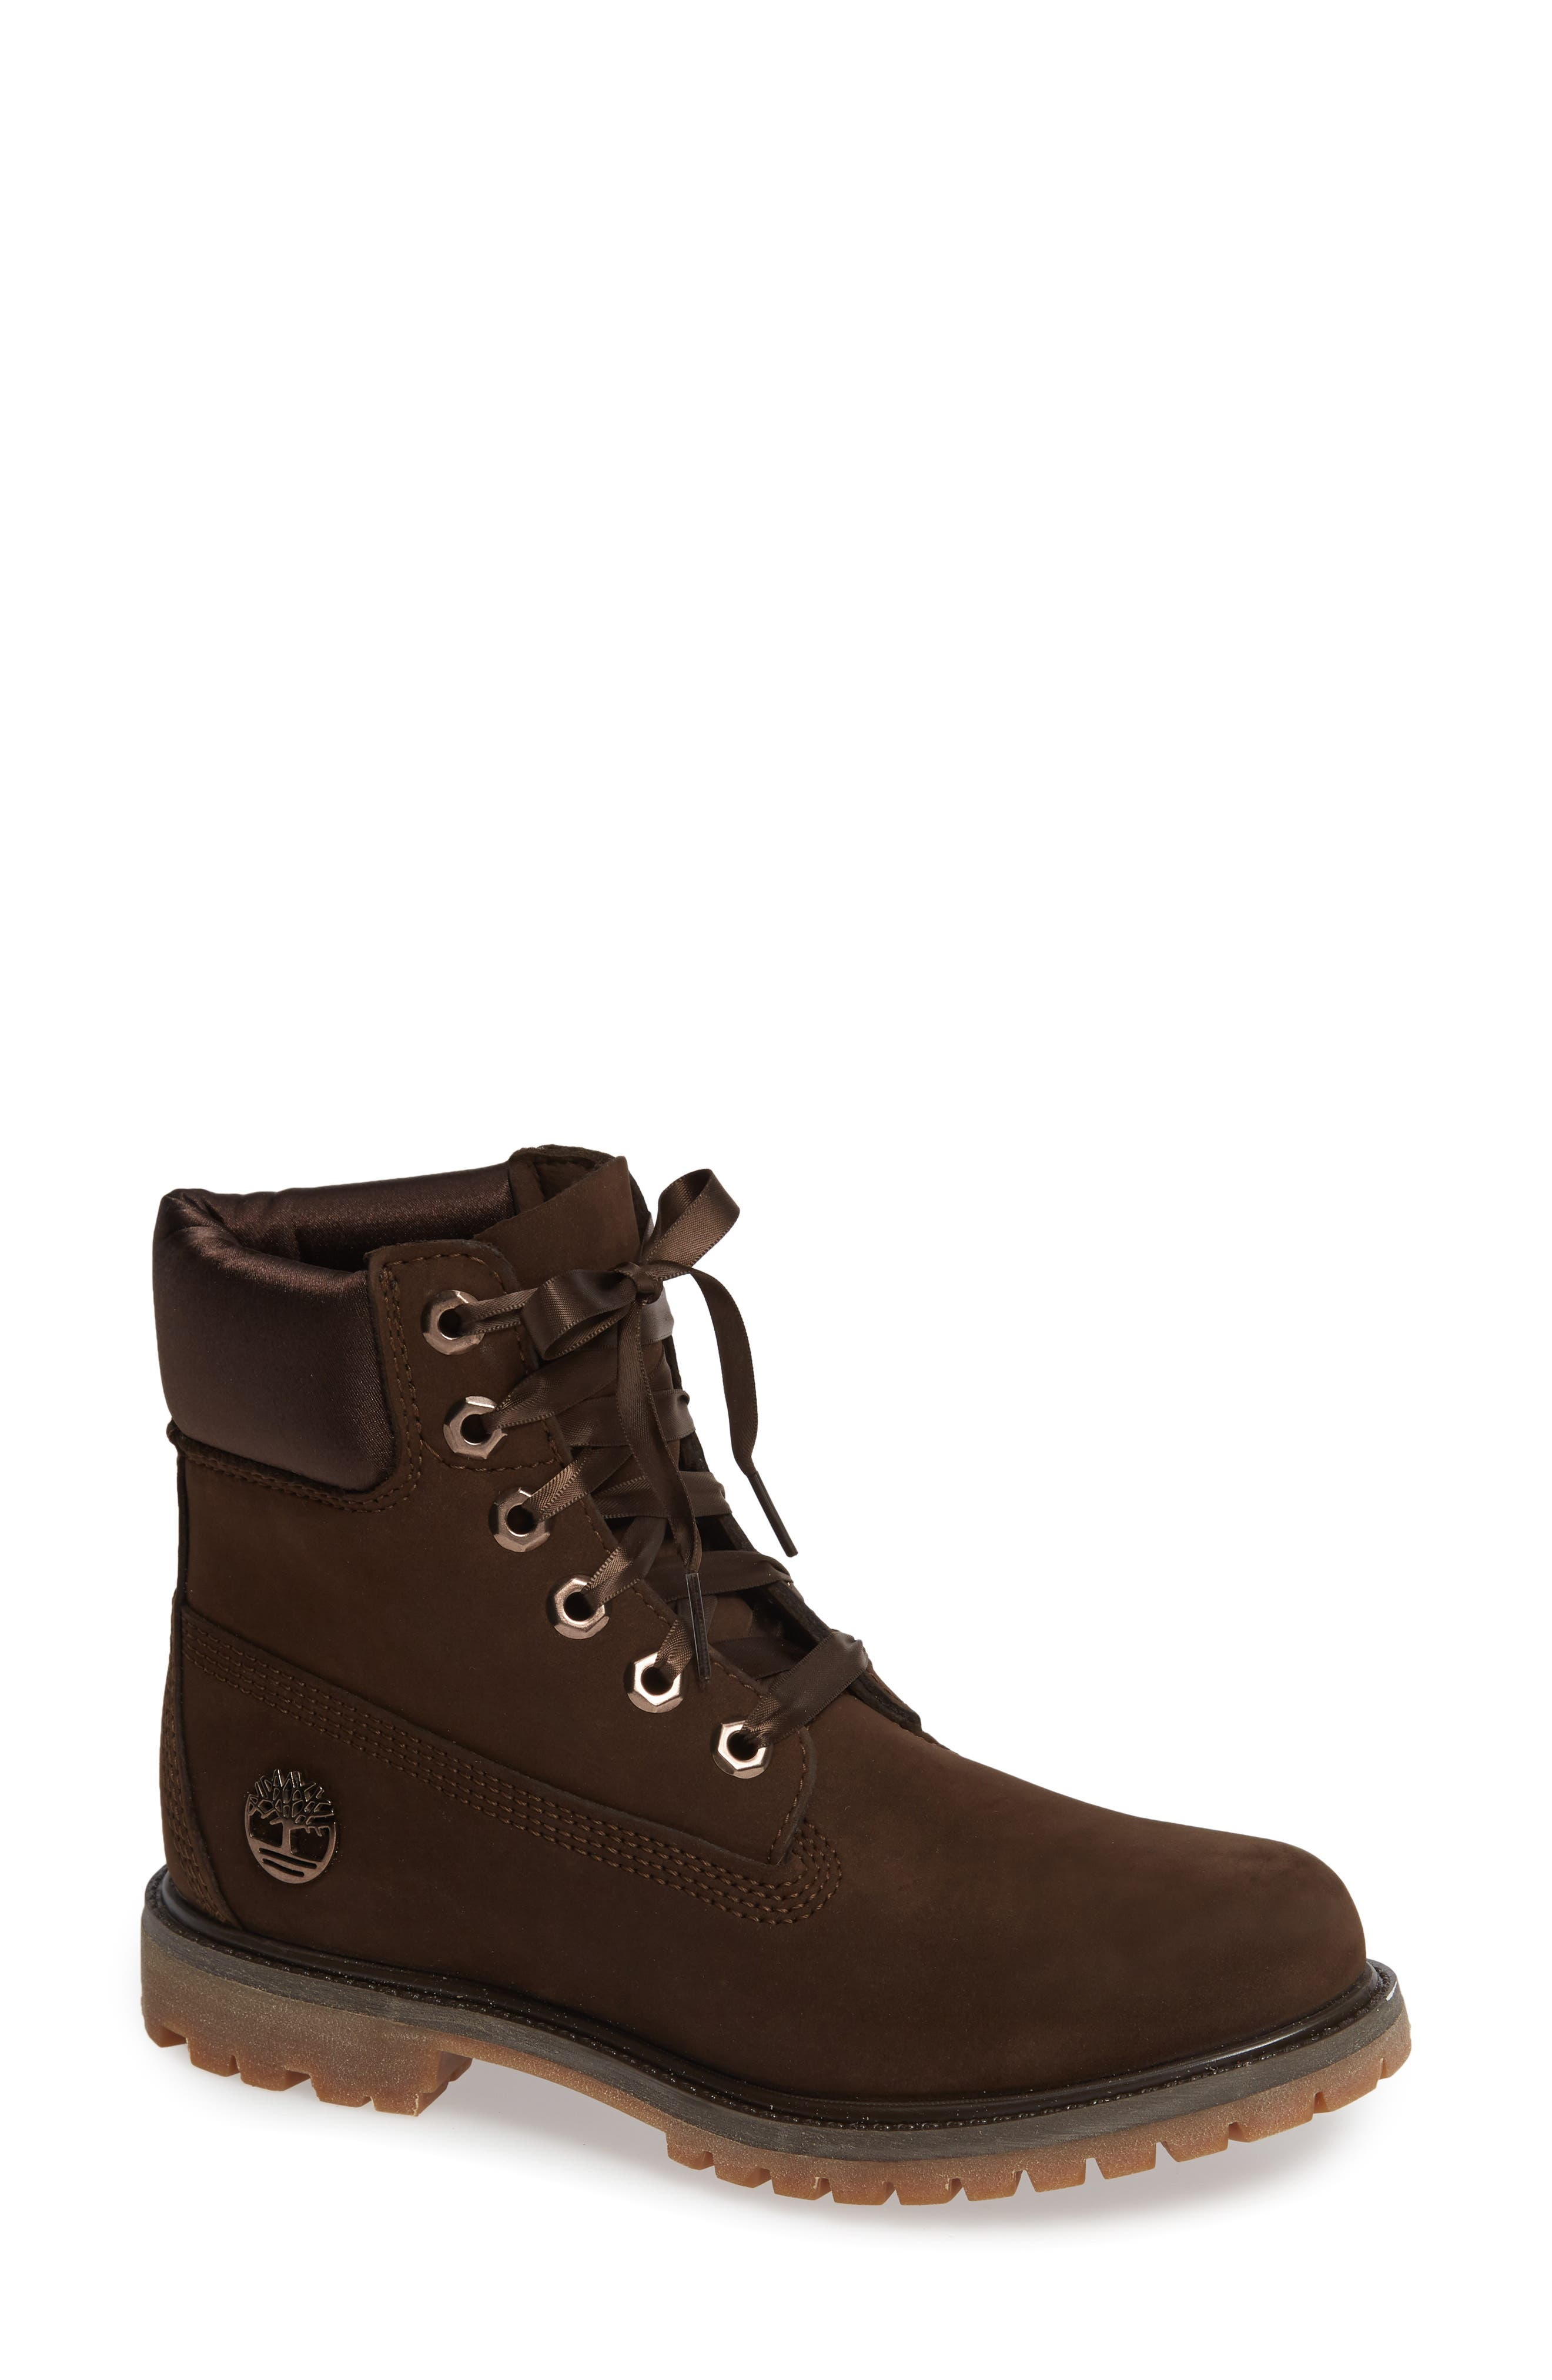 Timberland 6-Inch Premium Waterproof Bootie- Brown